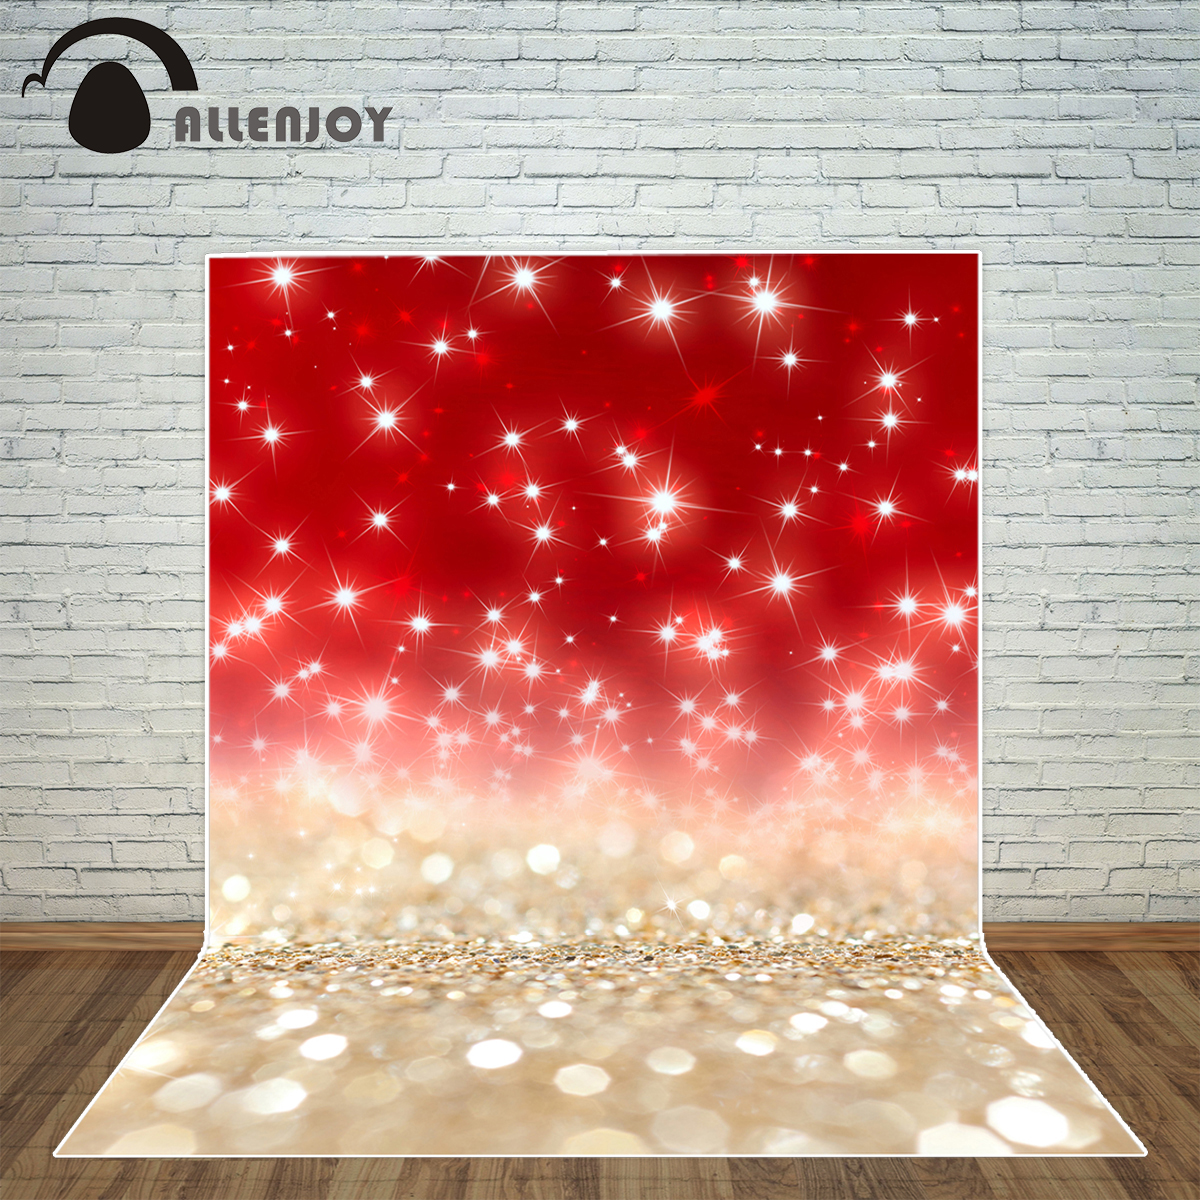 Allenjoy photography backdrop abstract christmas stars Bokeh glitter background photo studio new design camera fotografica kate natural scenery photography backdrop autumn defoliation for outdoor wedding photography background camera fotografica